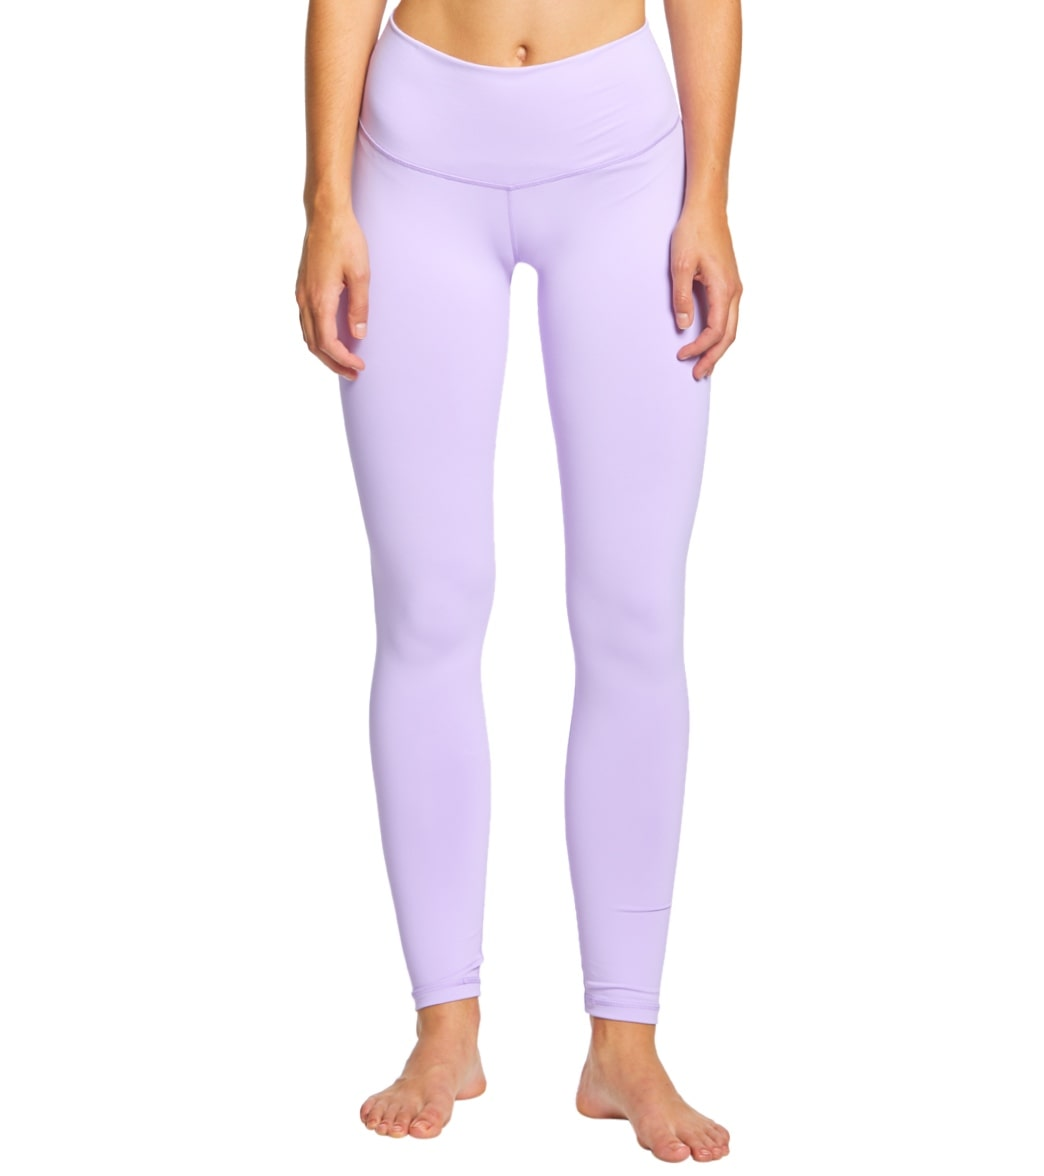 d1aa8b2669332 DYI Take Control High Waisted Yoga Leggings at YogaOutlet.com - Free ...